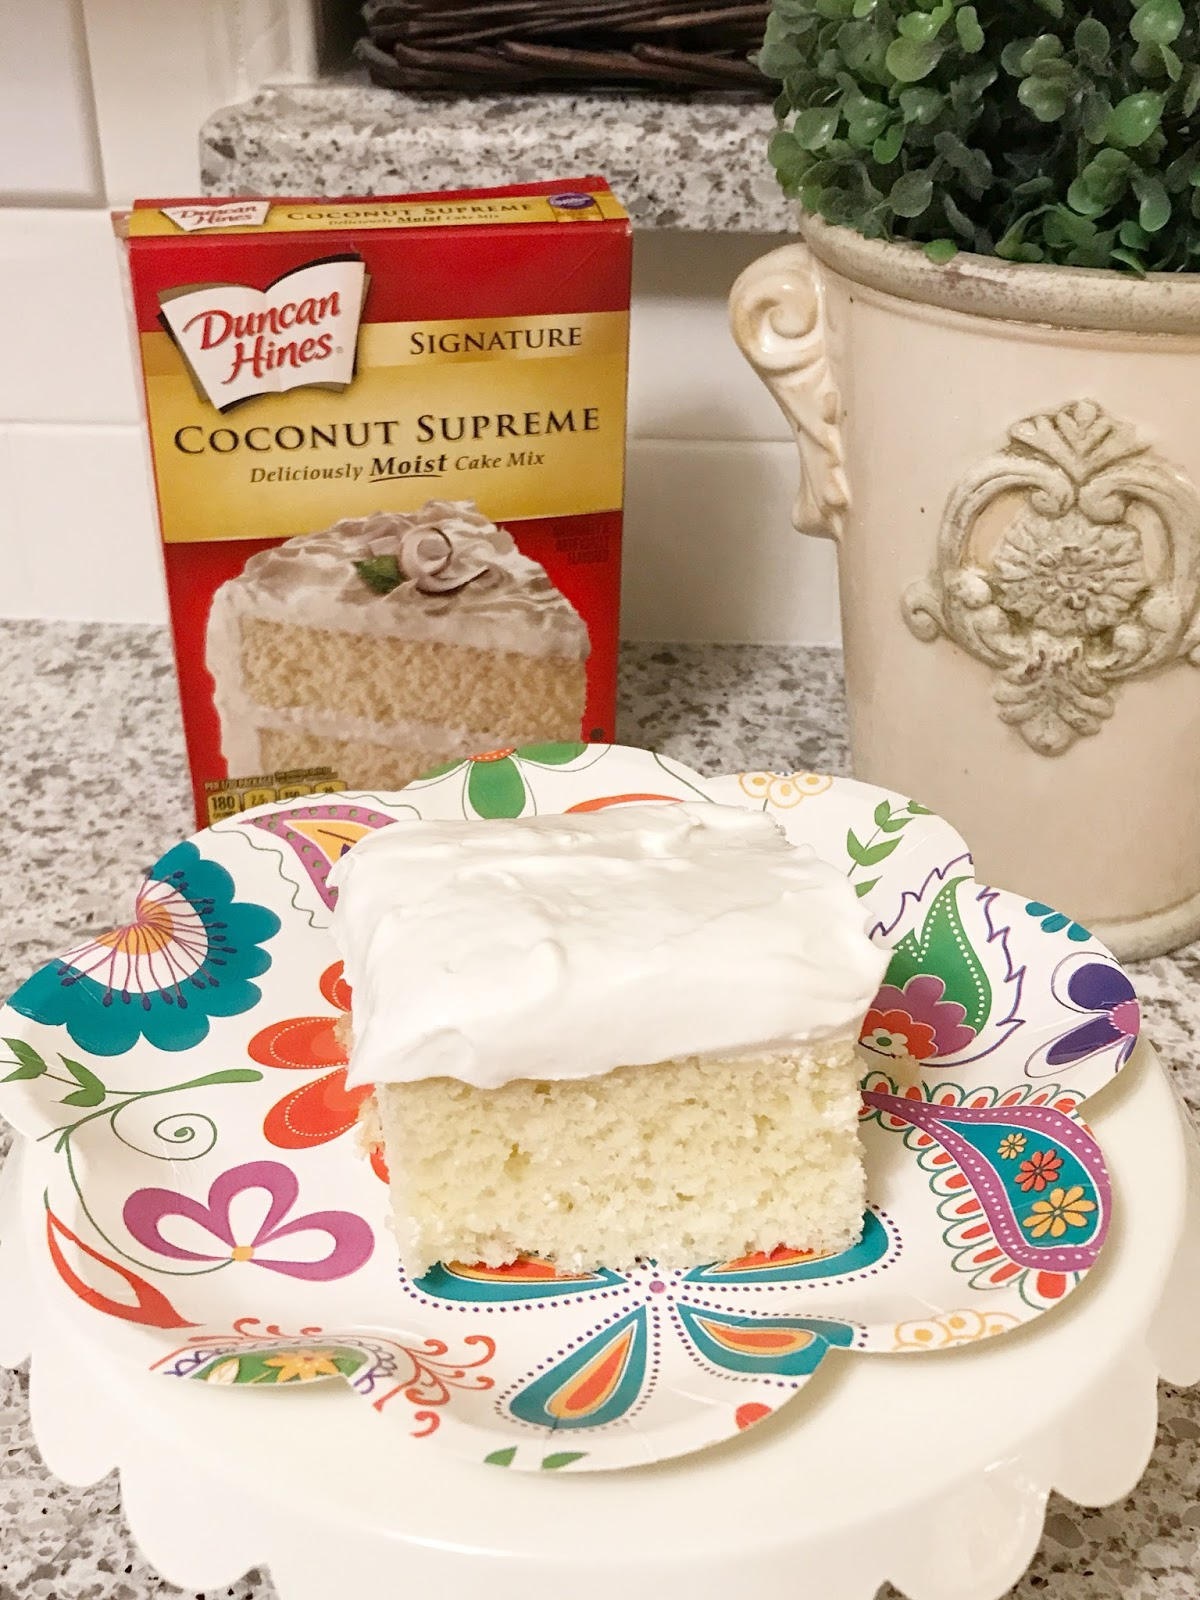 Duncan Hines Coconut Supreme Cake Mix